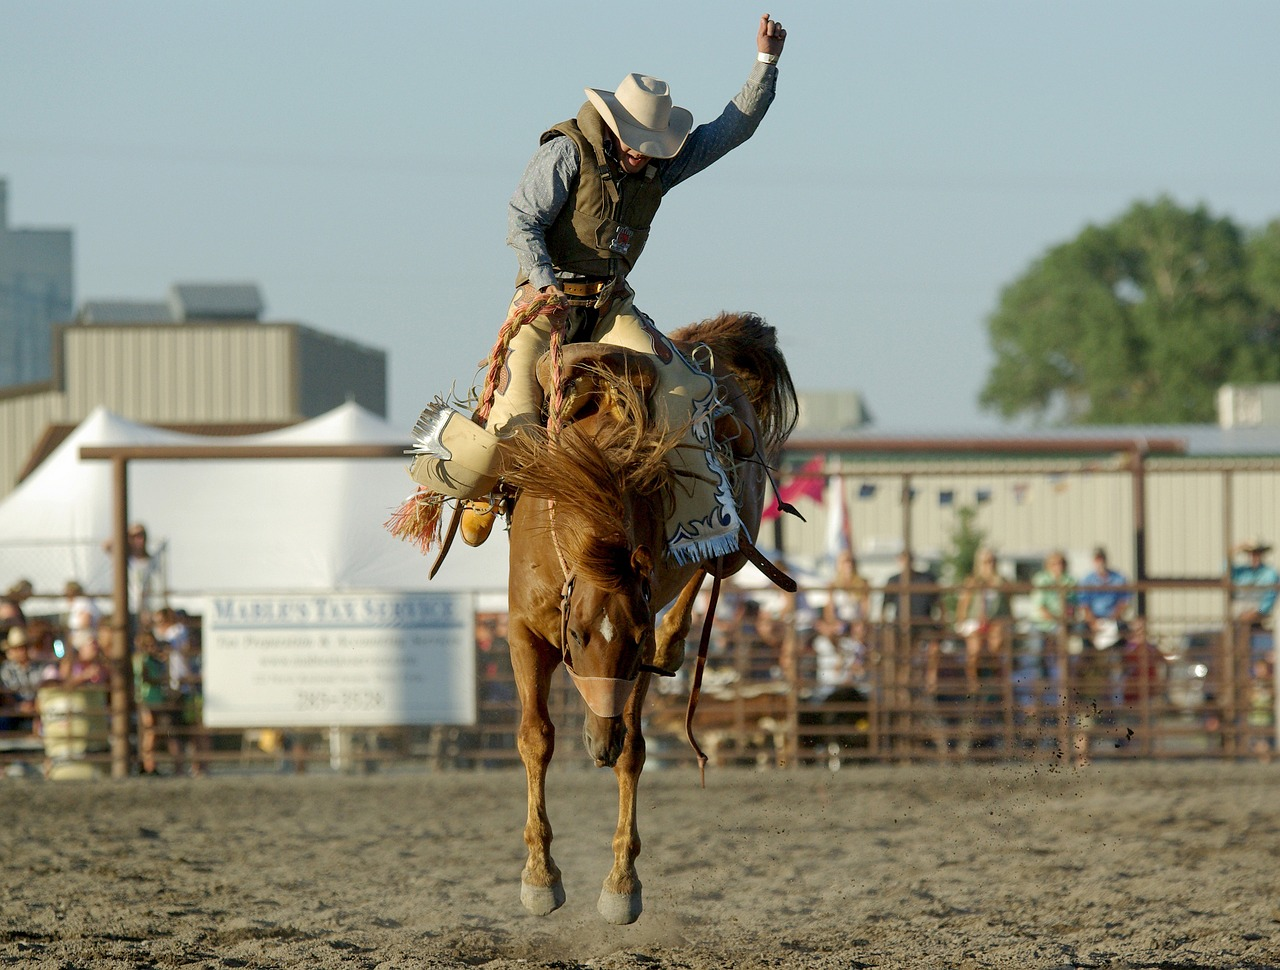 Saddle Up, Rodeo Cowboy: Time To Master Your Money Bronco